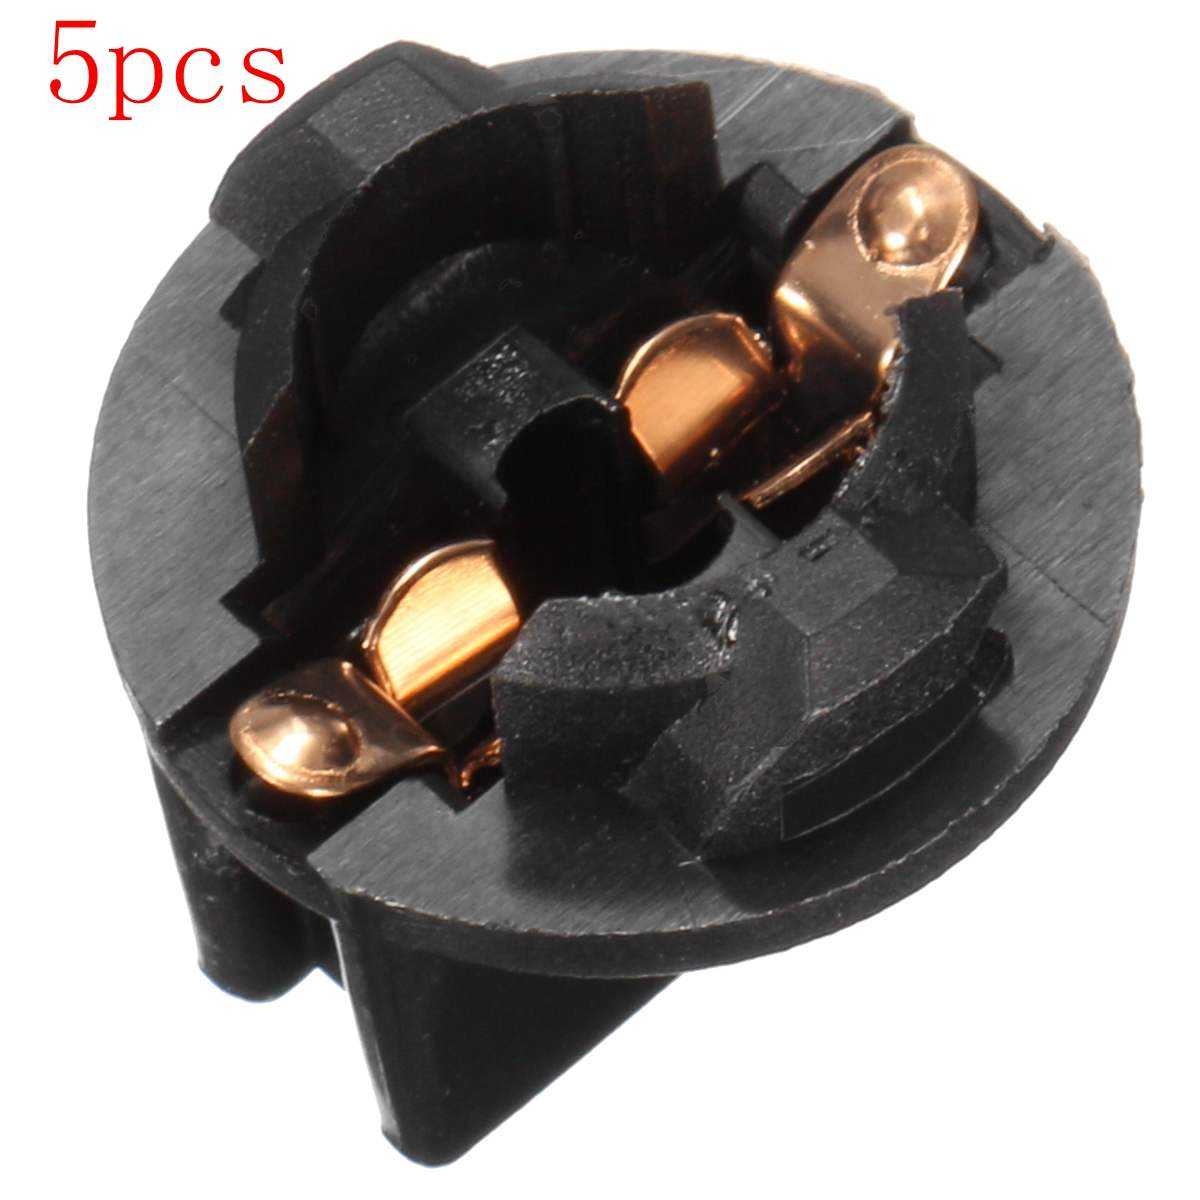 5pcs Black T10 Twist-in Interior Car Light Socket Twist Lock Plug Instrument Dashboard Panel Light Bulb 192 194 168 259